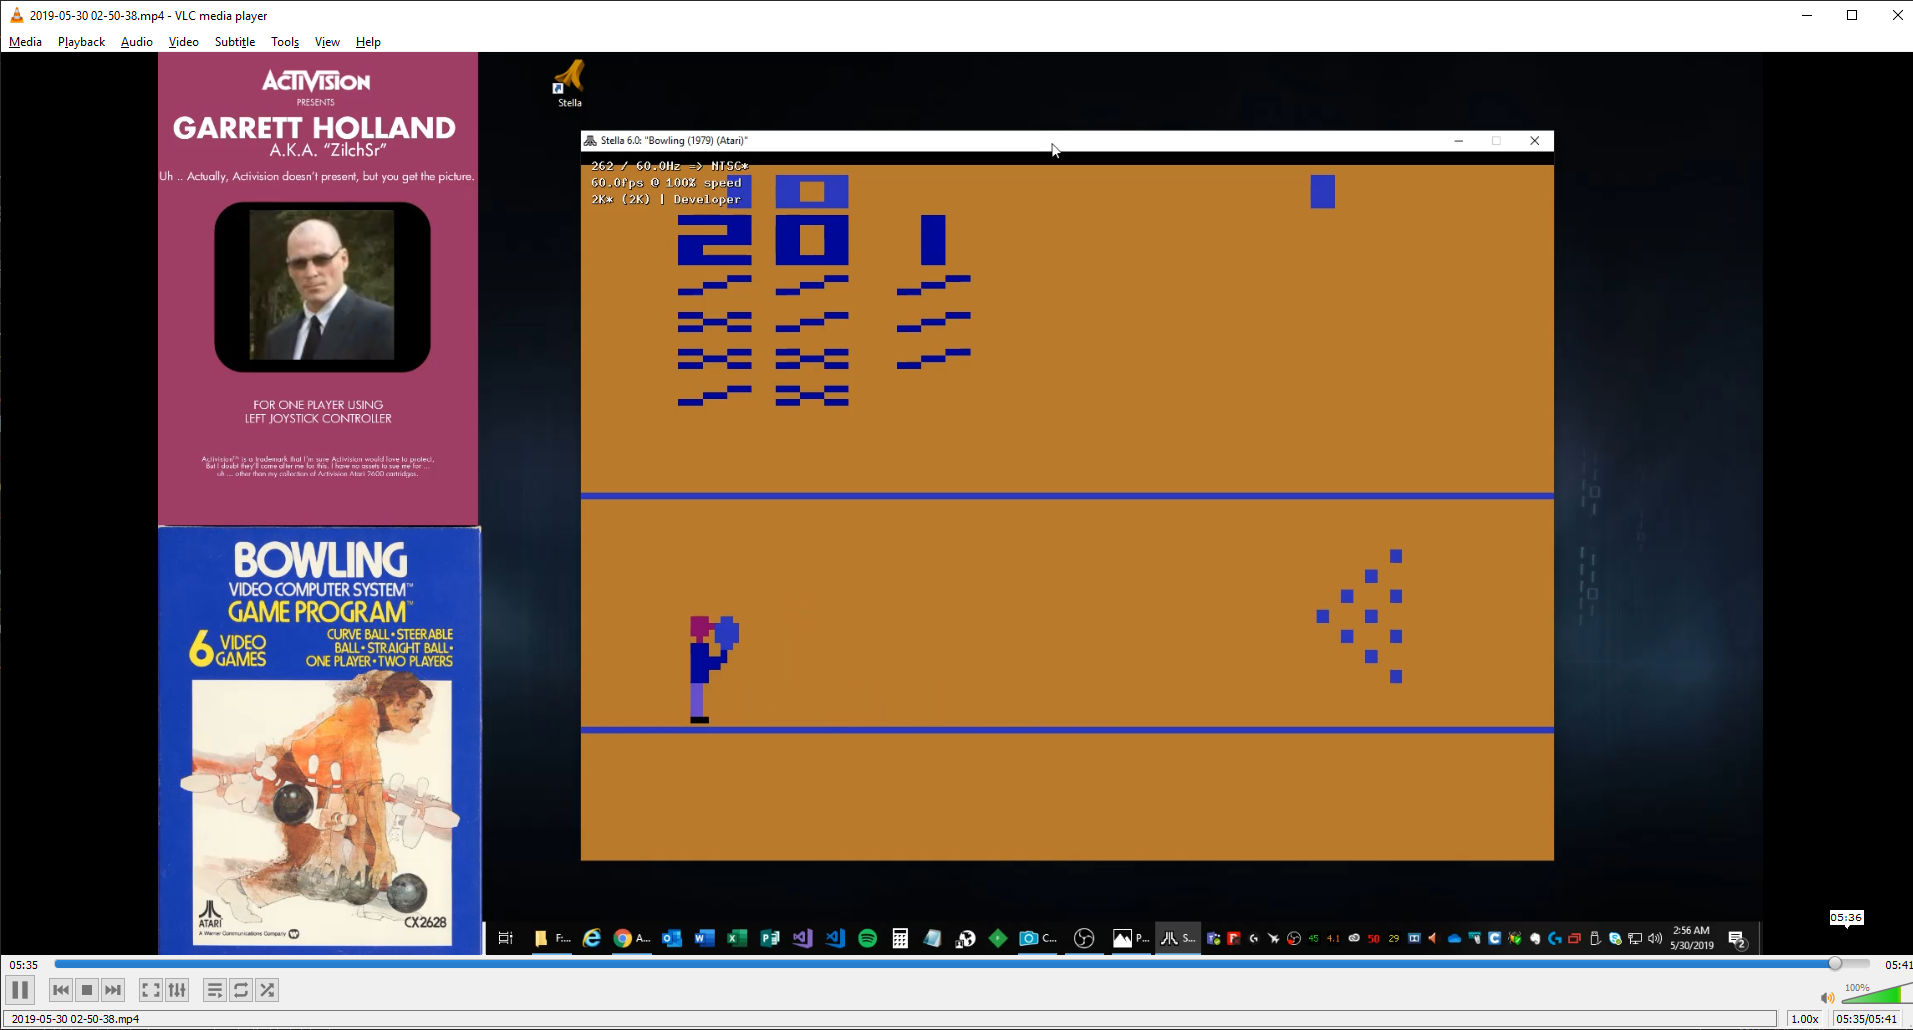 ZilchSr: Bowling (Atari 2600 Emulated Novice/B Mode) 201 points on 2019-05-30 02:07:01